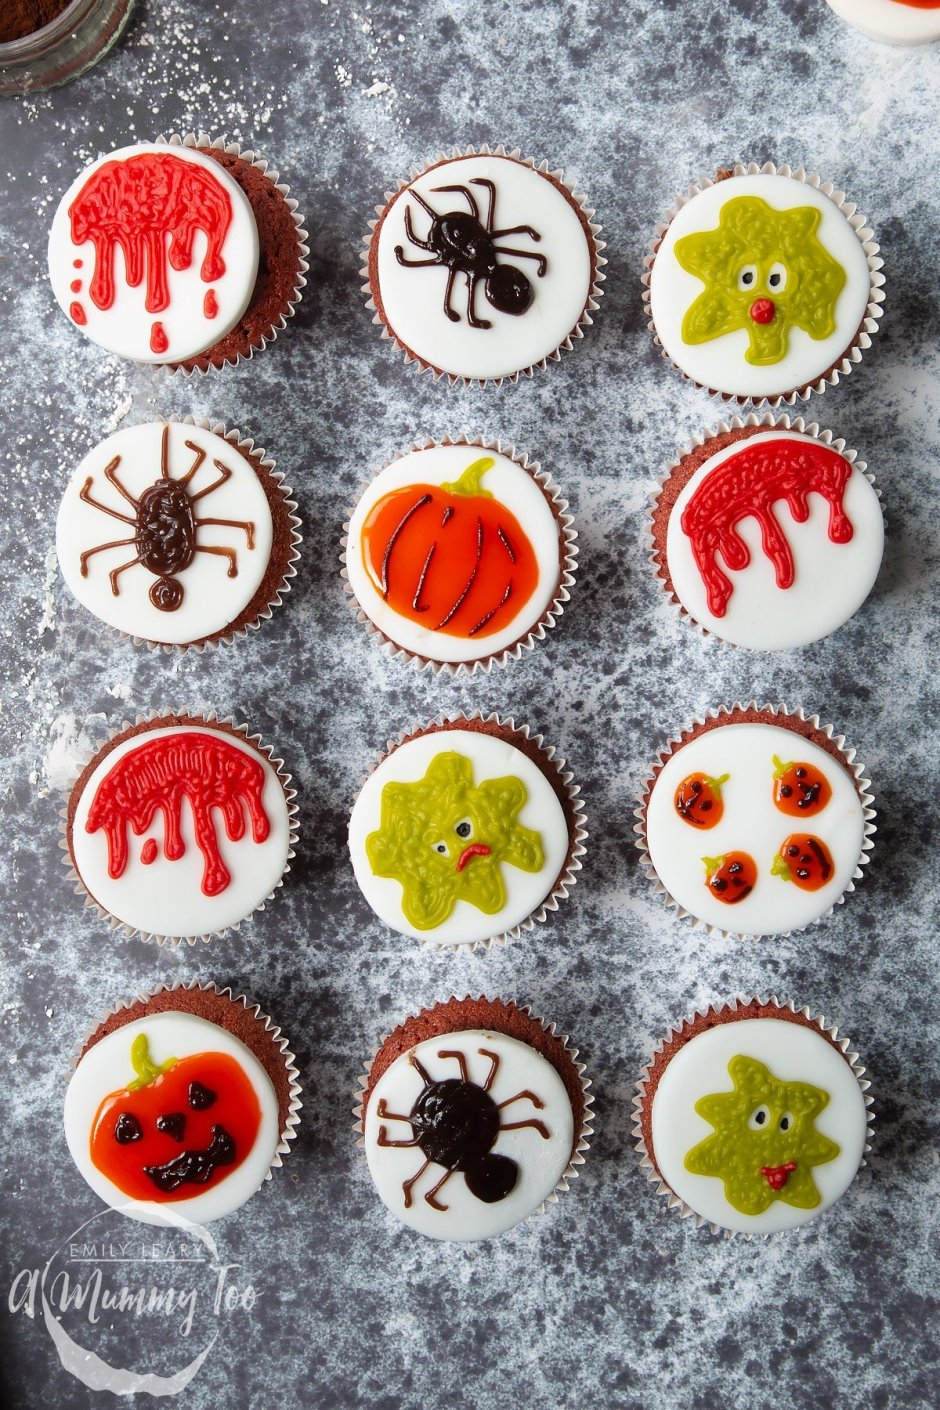 Dairy free Halloween cupcakes: red velvet cupcakes topped with chocolate frosting and white fondant discs decorated with icing pens. The designs include dripping blood, spiders, green monsters and pumpkins.